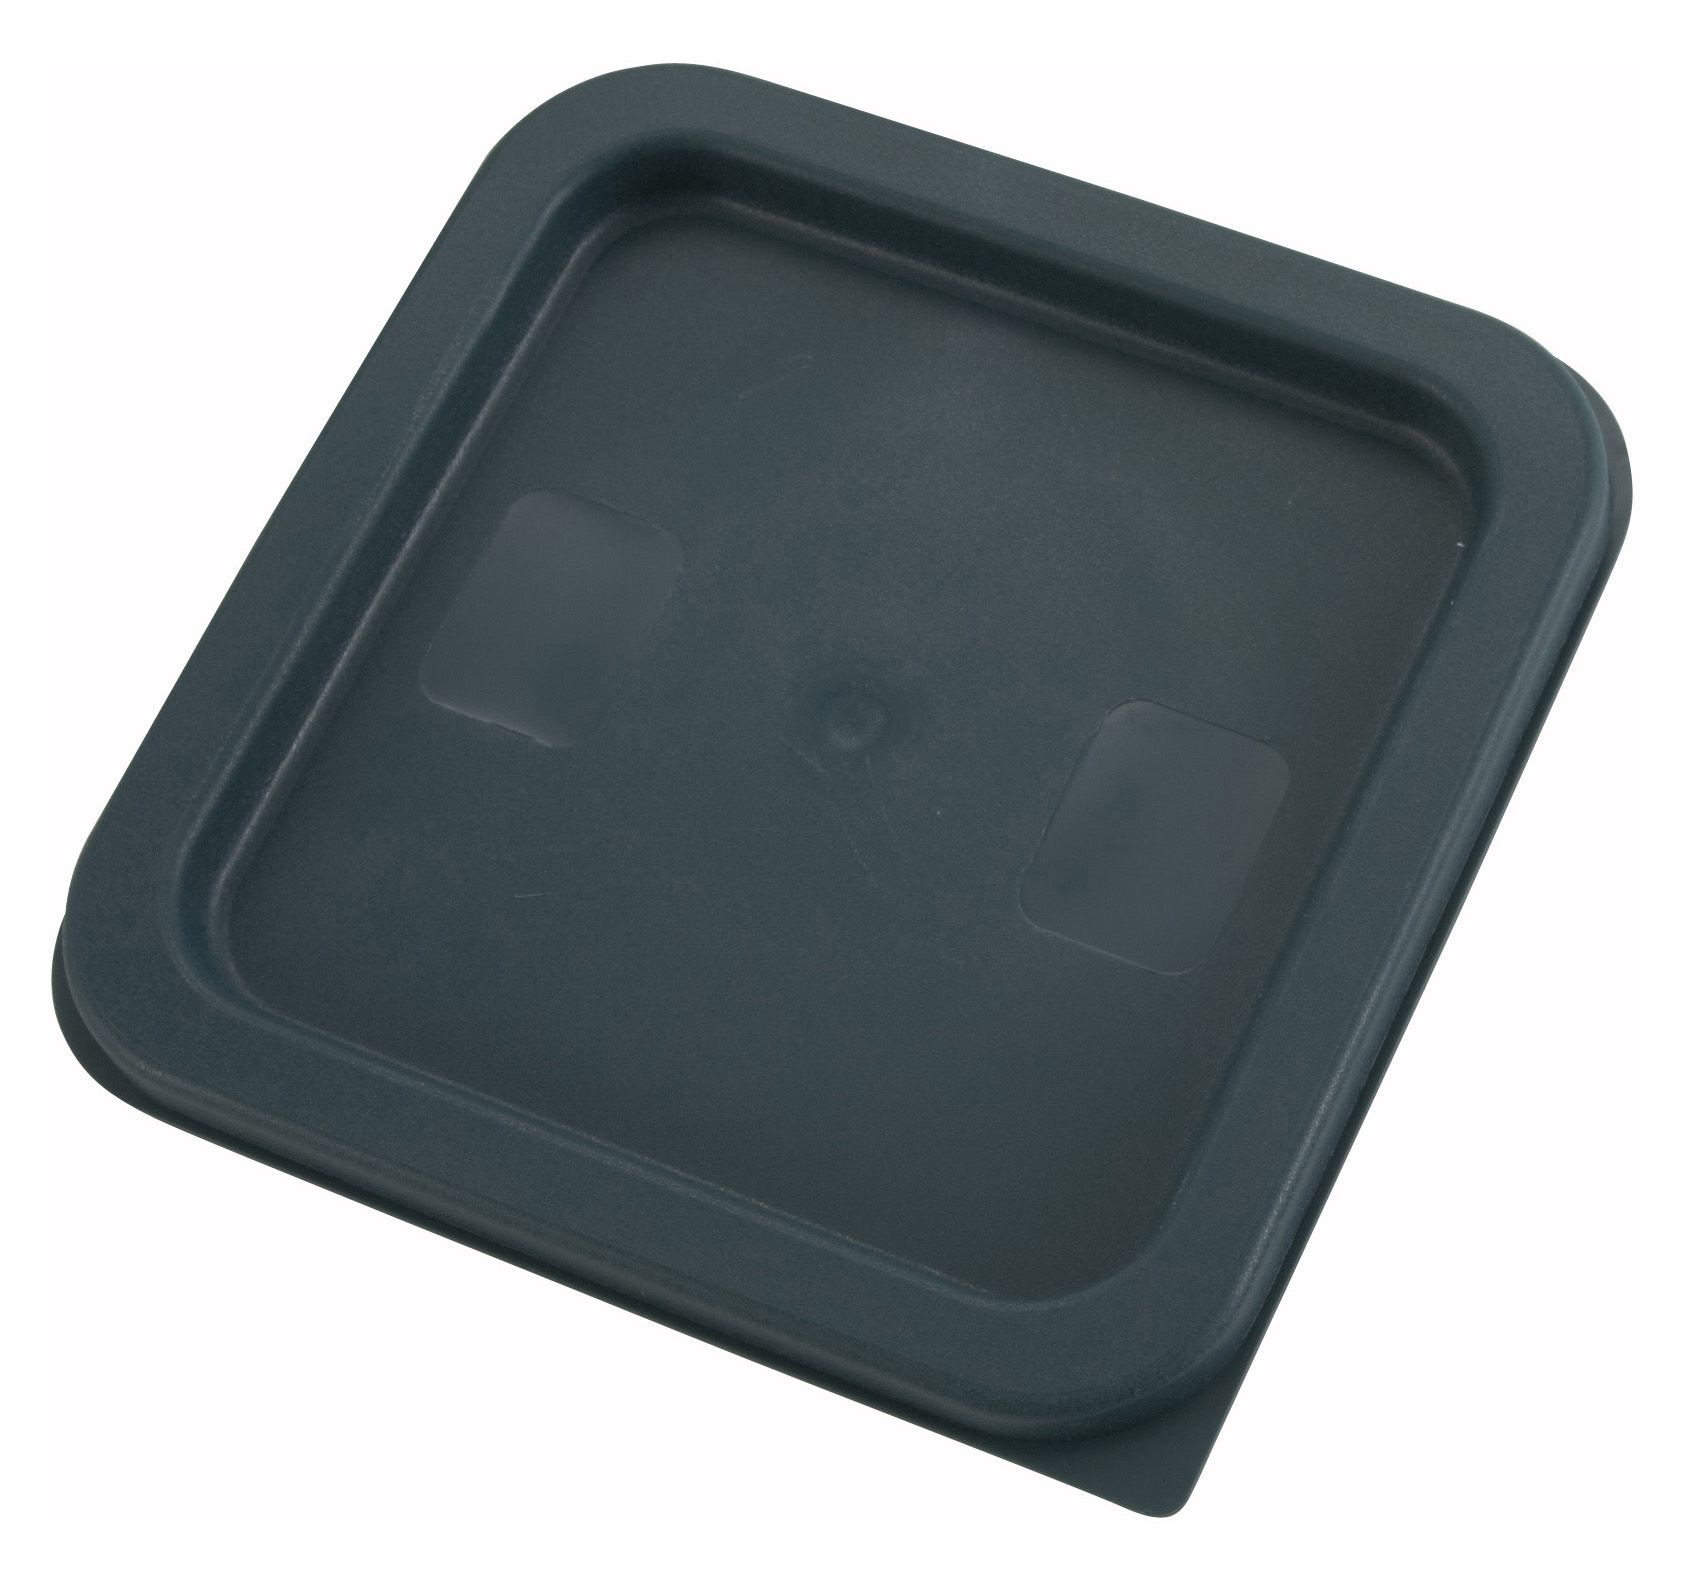 Green Polyethylene Cover For 2 And 4 Quart Square Containers